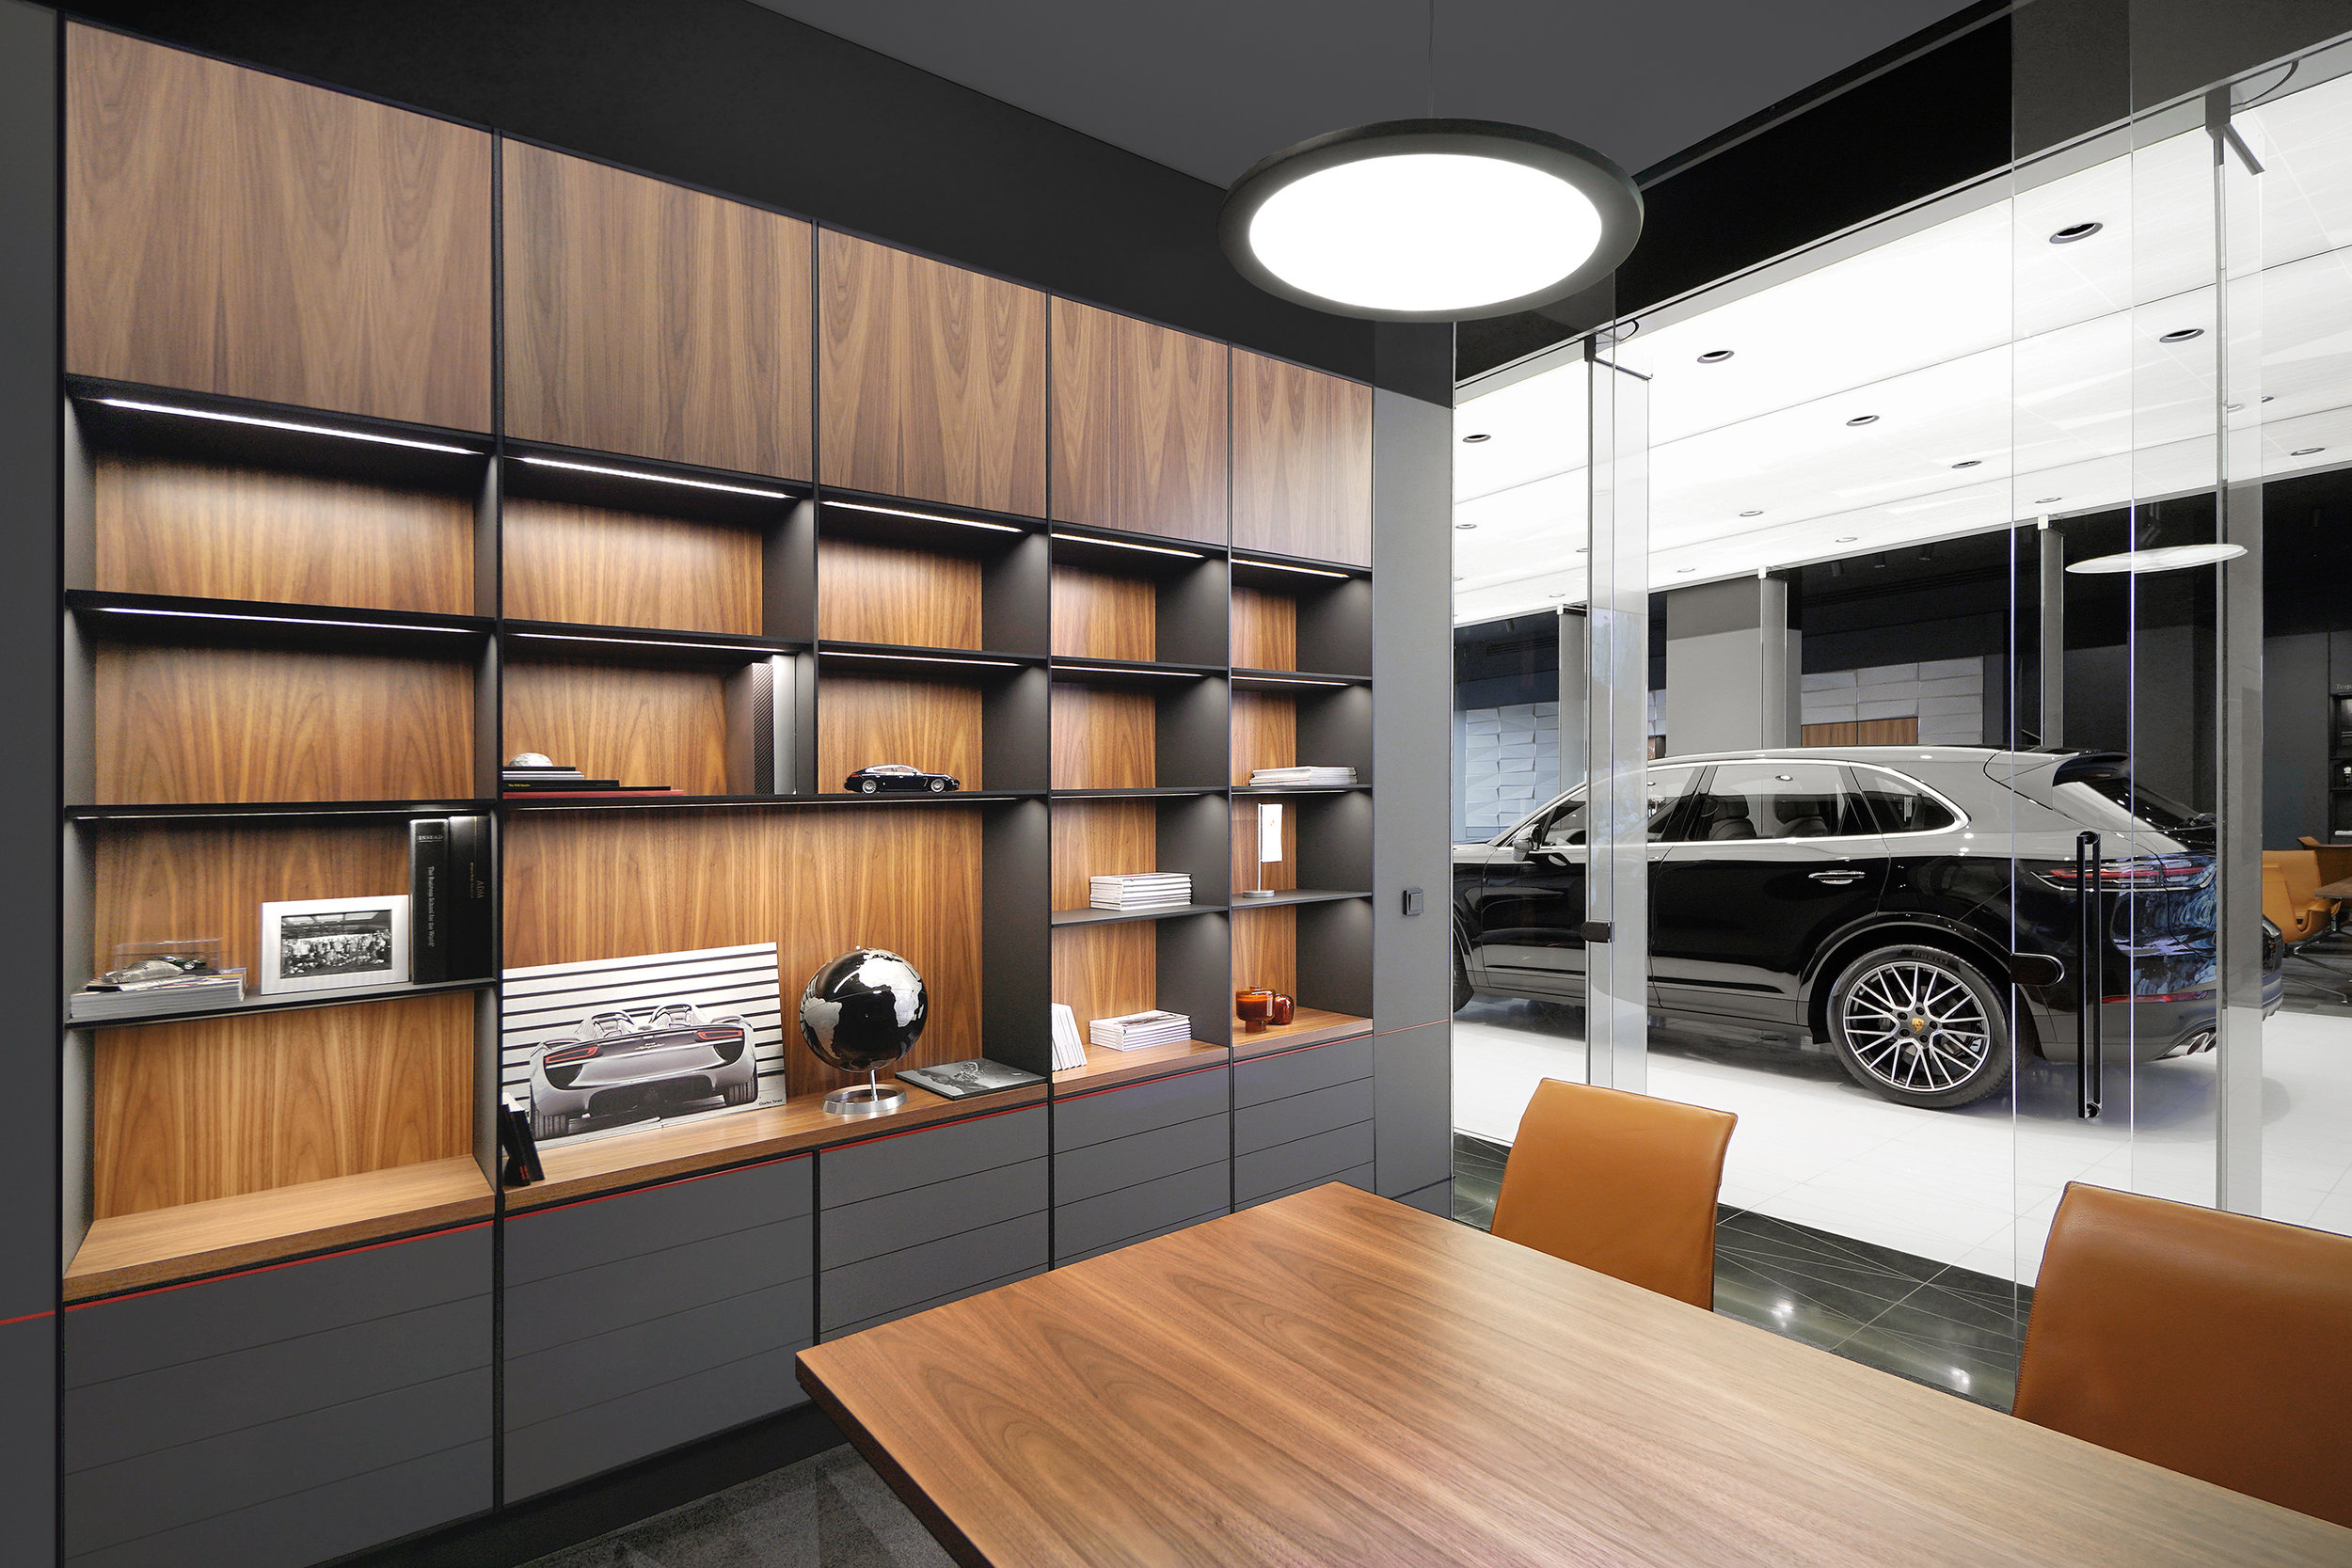 porsche-studio_retail-interior-design_coordination-berlin_20.jpg